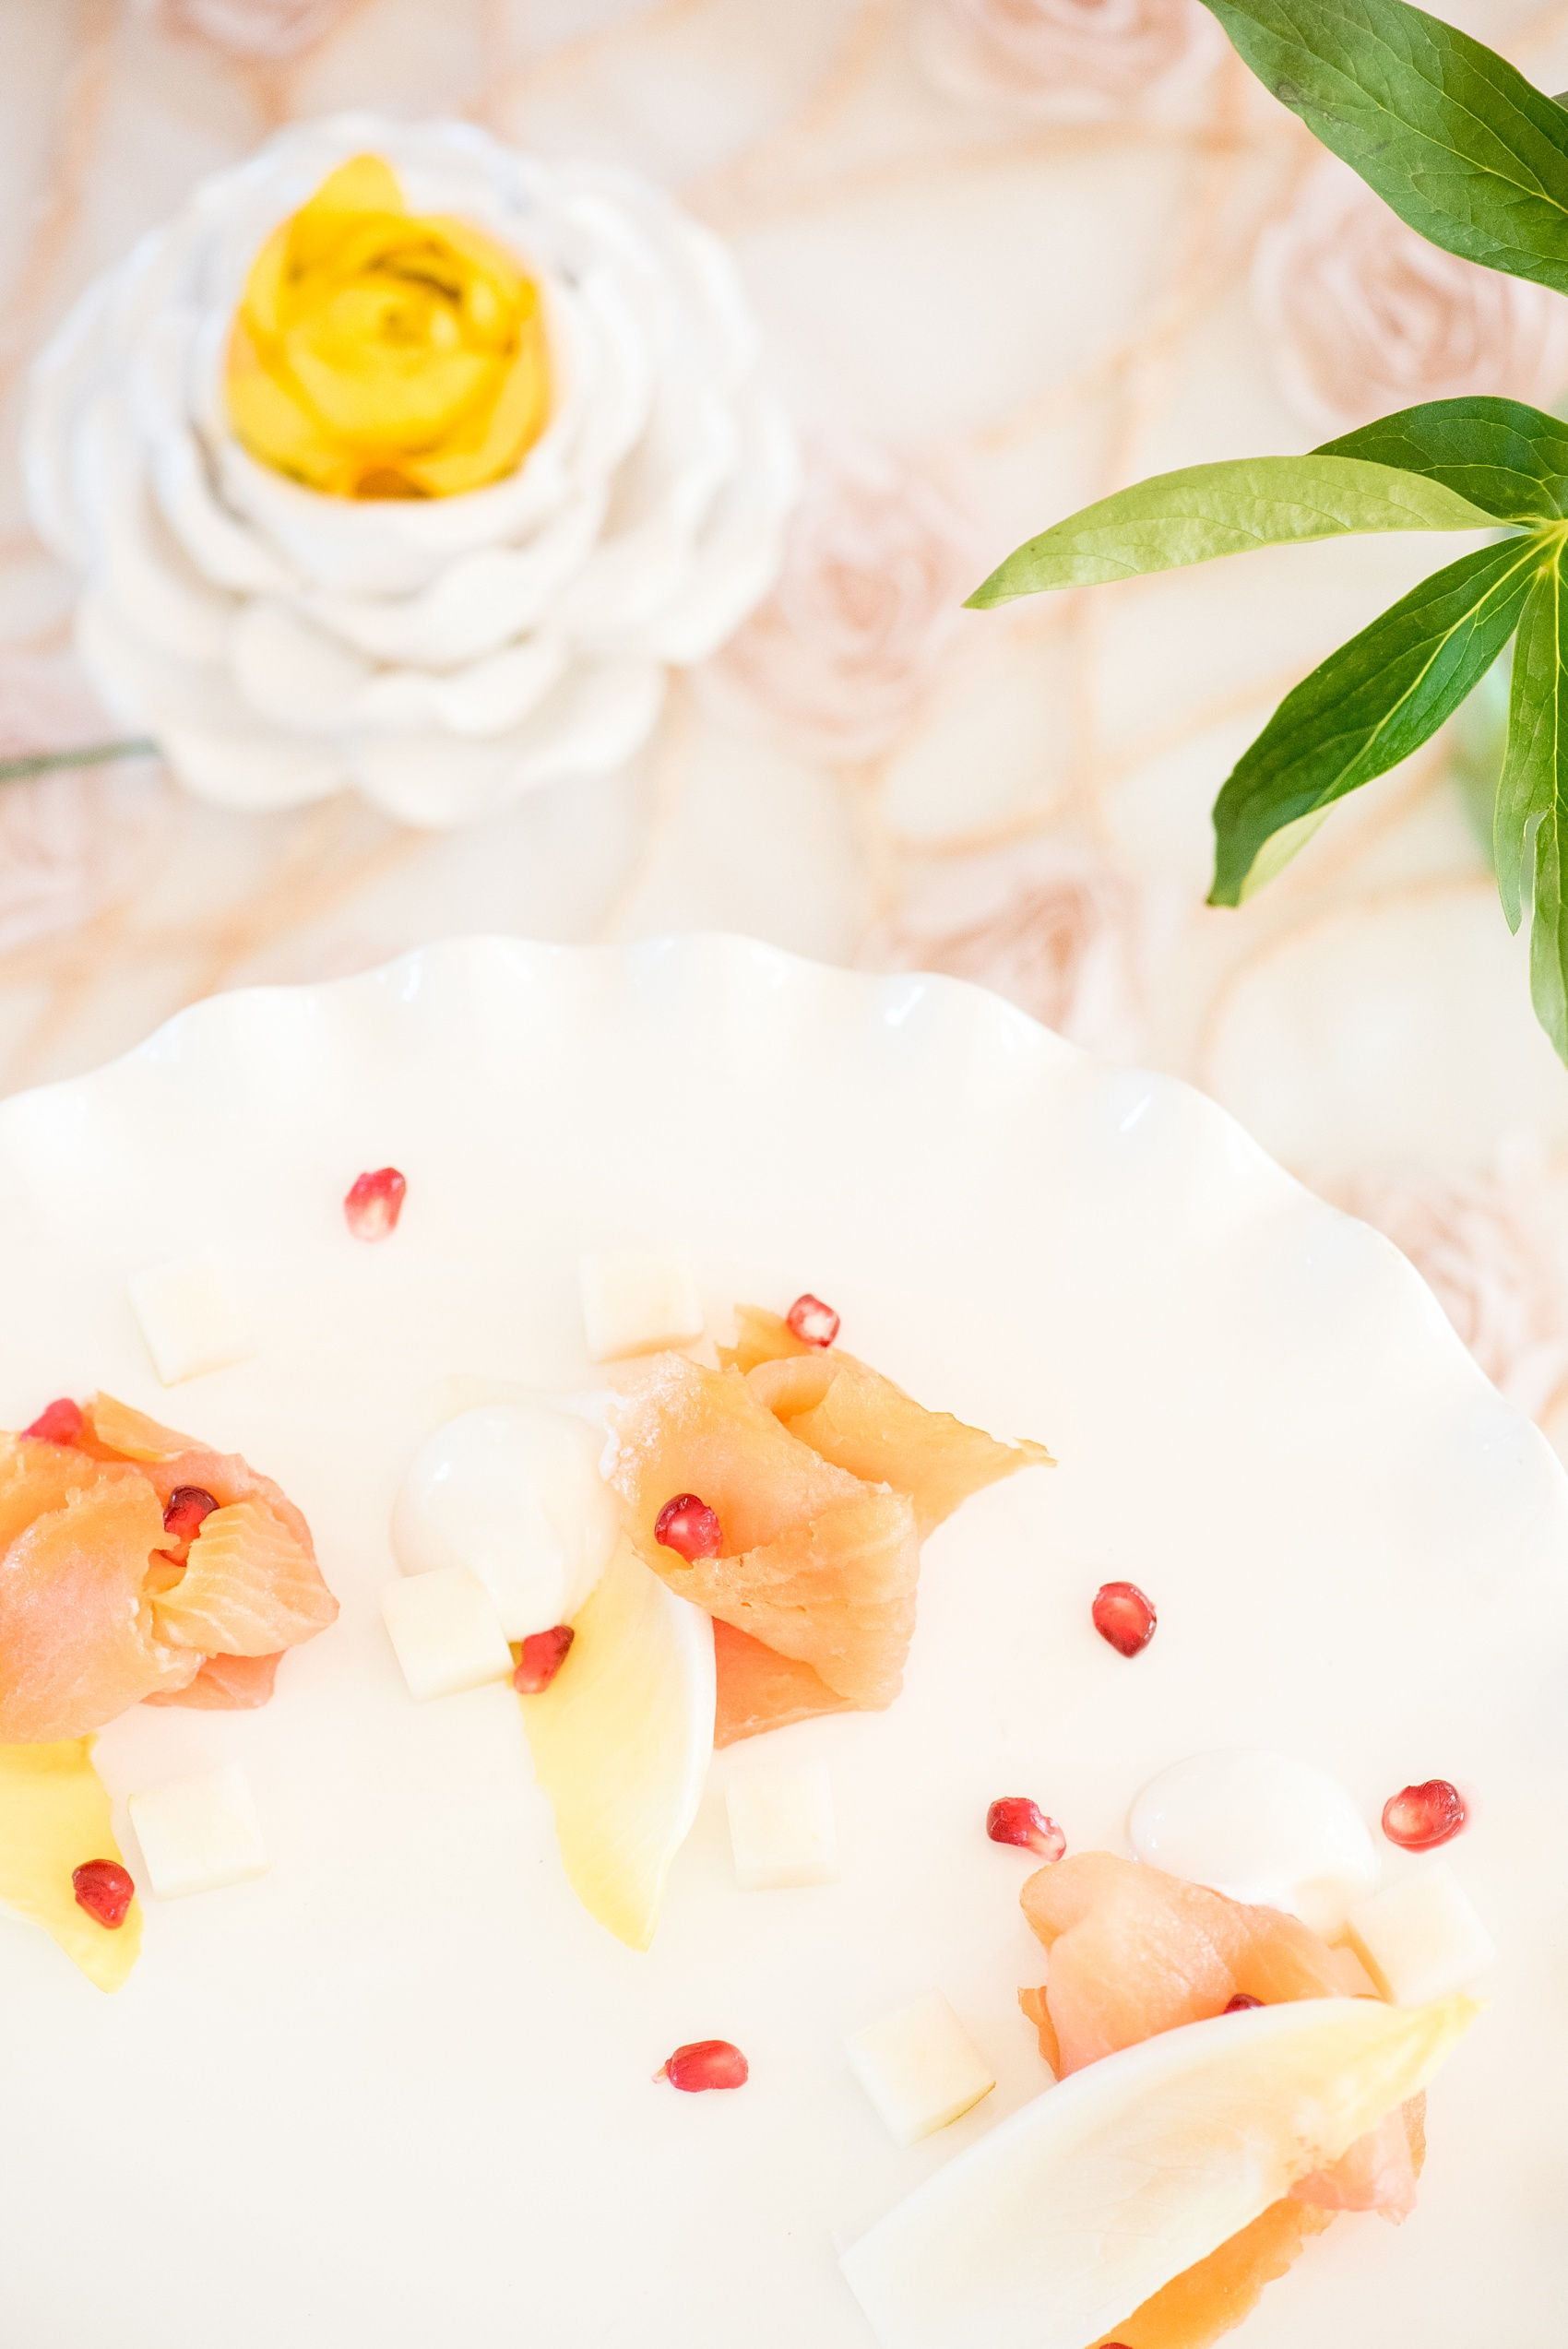 Mikkel Paige Photography wedding photo at The Bradford, NC. Salmon lox plate with pomegranate seeds by Belle's Catering.